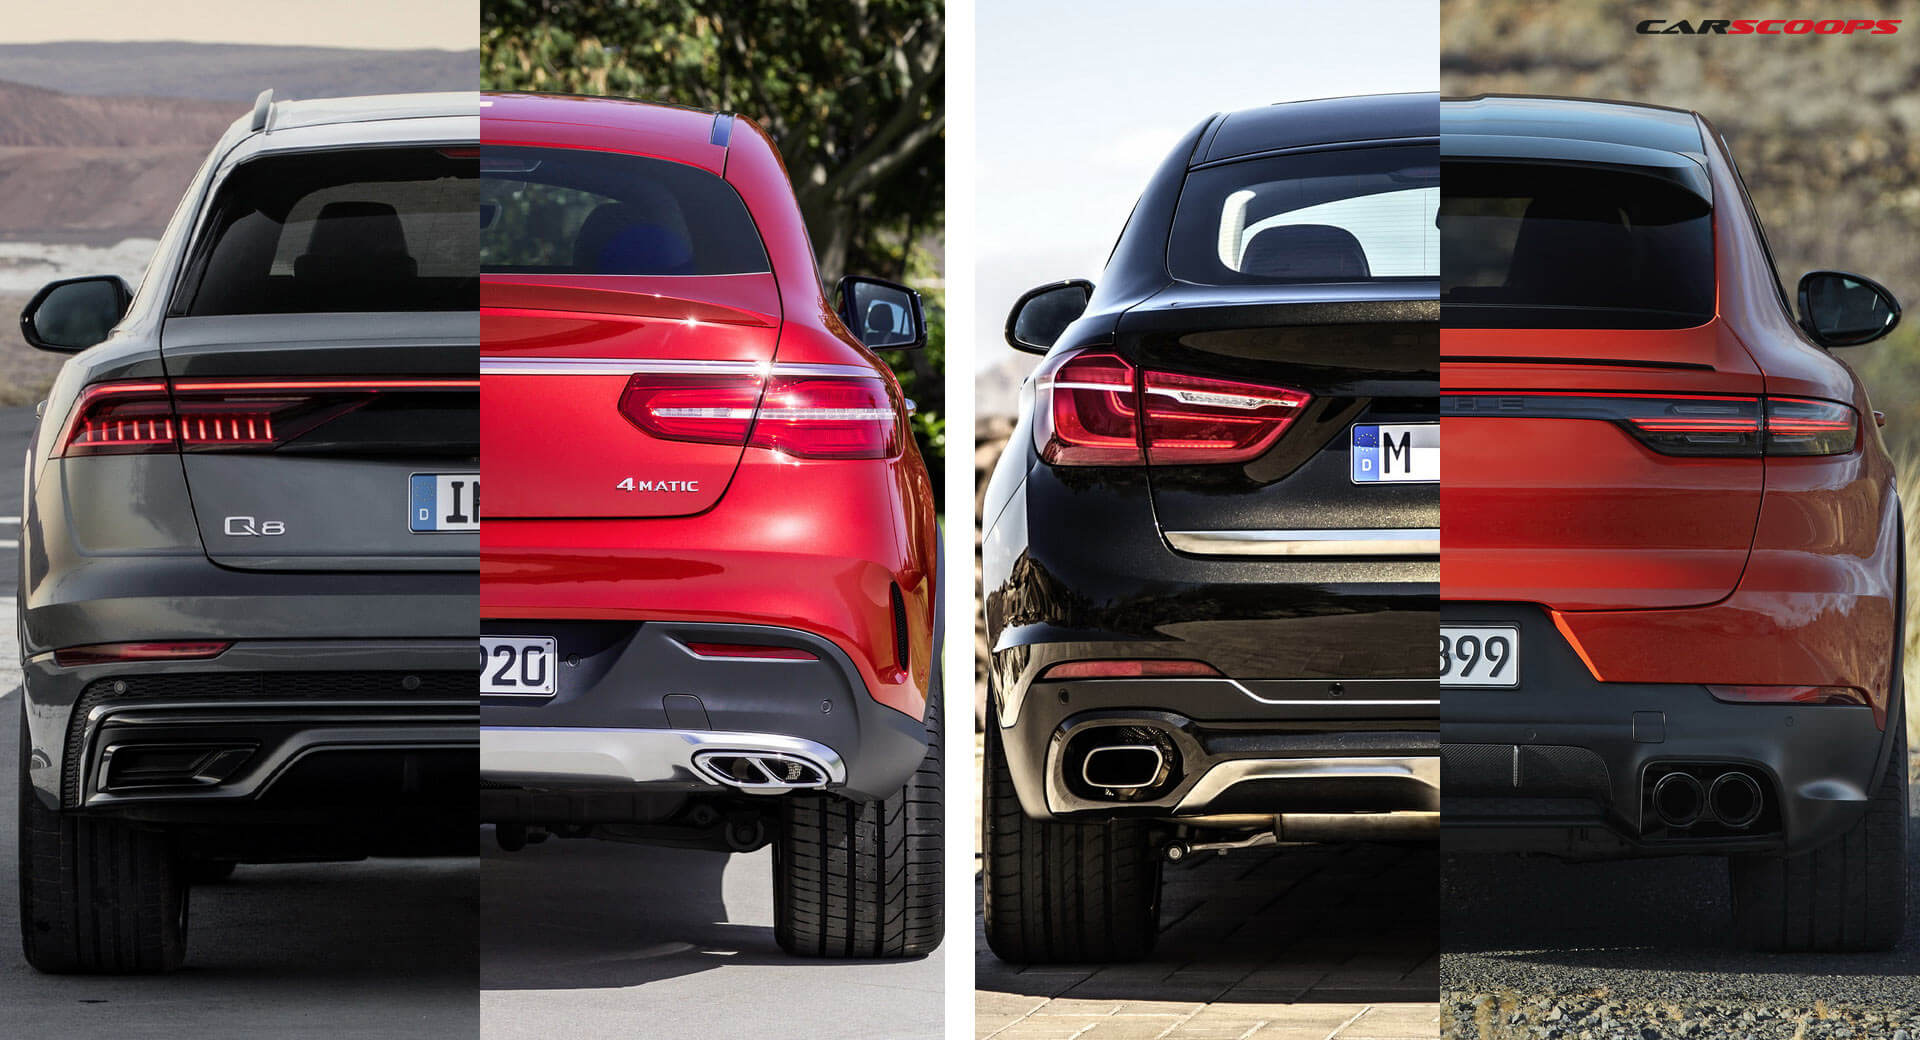 Porsche Cayenne Coupe Vs Bmw X6 Vs Mercedes Gle Coupe Vs Audi Q8